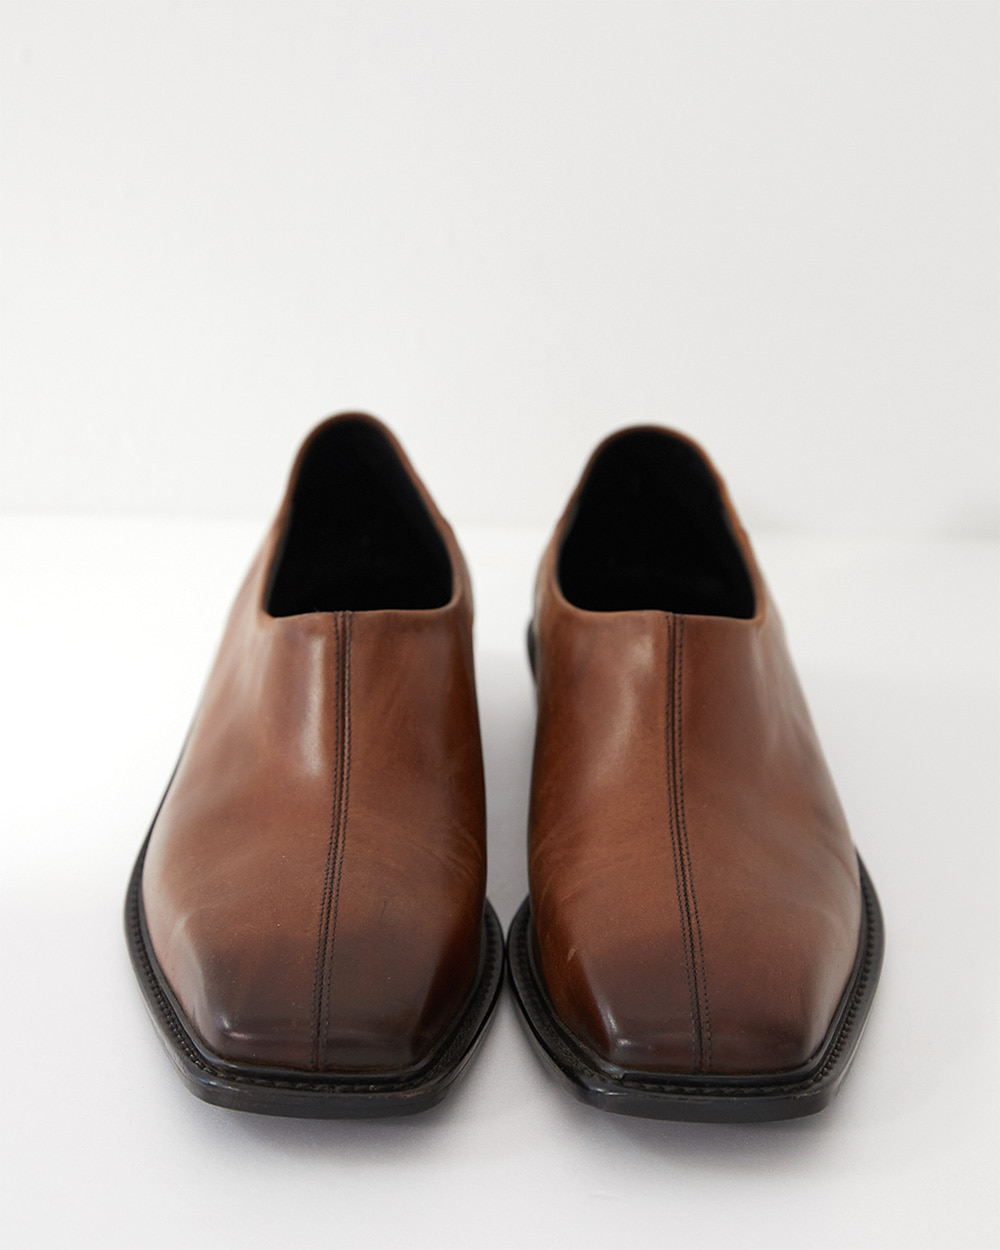 HALEINE알렌느 BROWN gradation leather square toe mule(NH001)